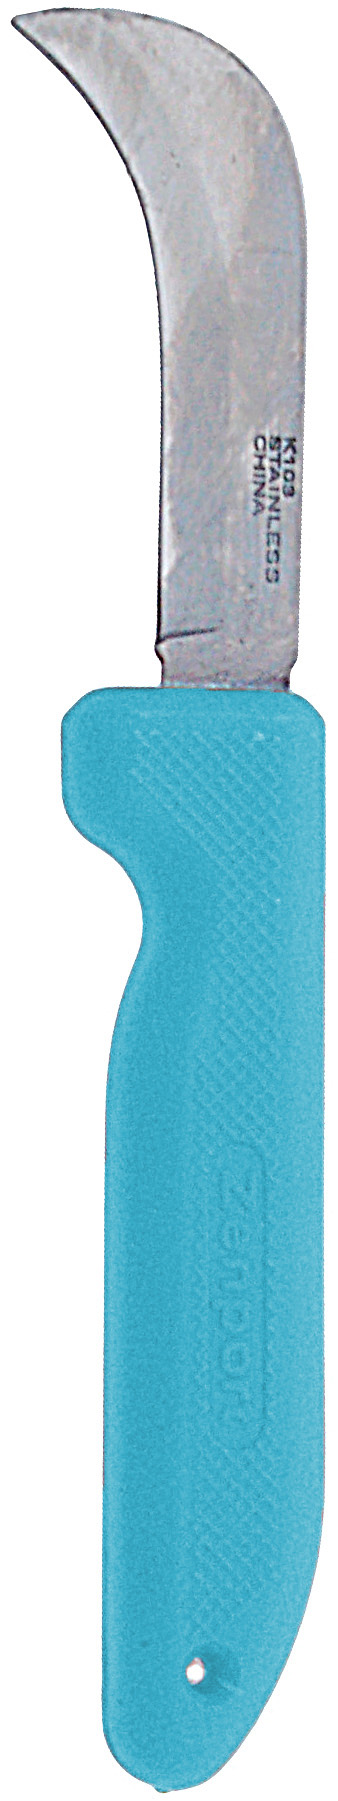 Zenport Sod/Mushroom Knife K103-BLUE Harvest Utility Knife, 3-Inch Straight Stainless Steel Non-Serrated Blade